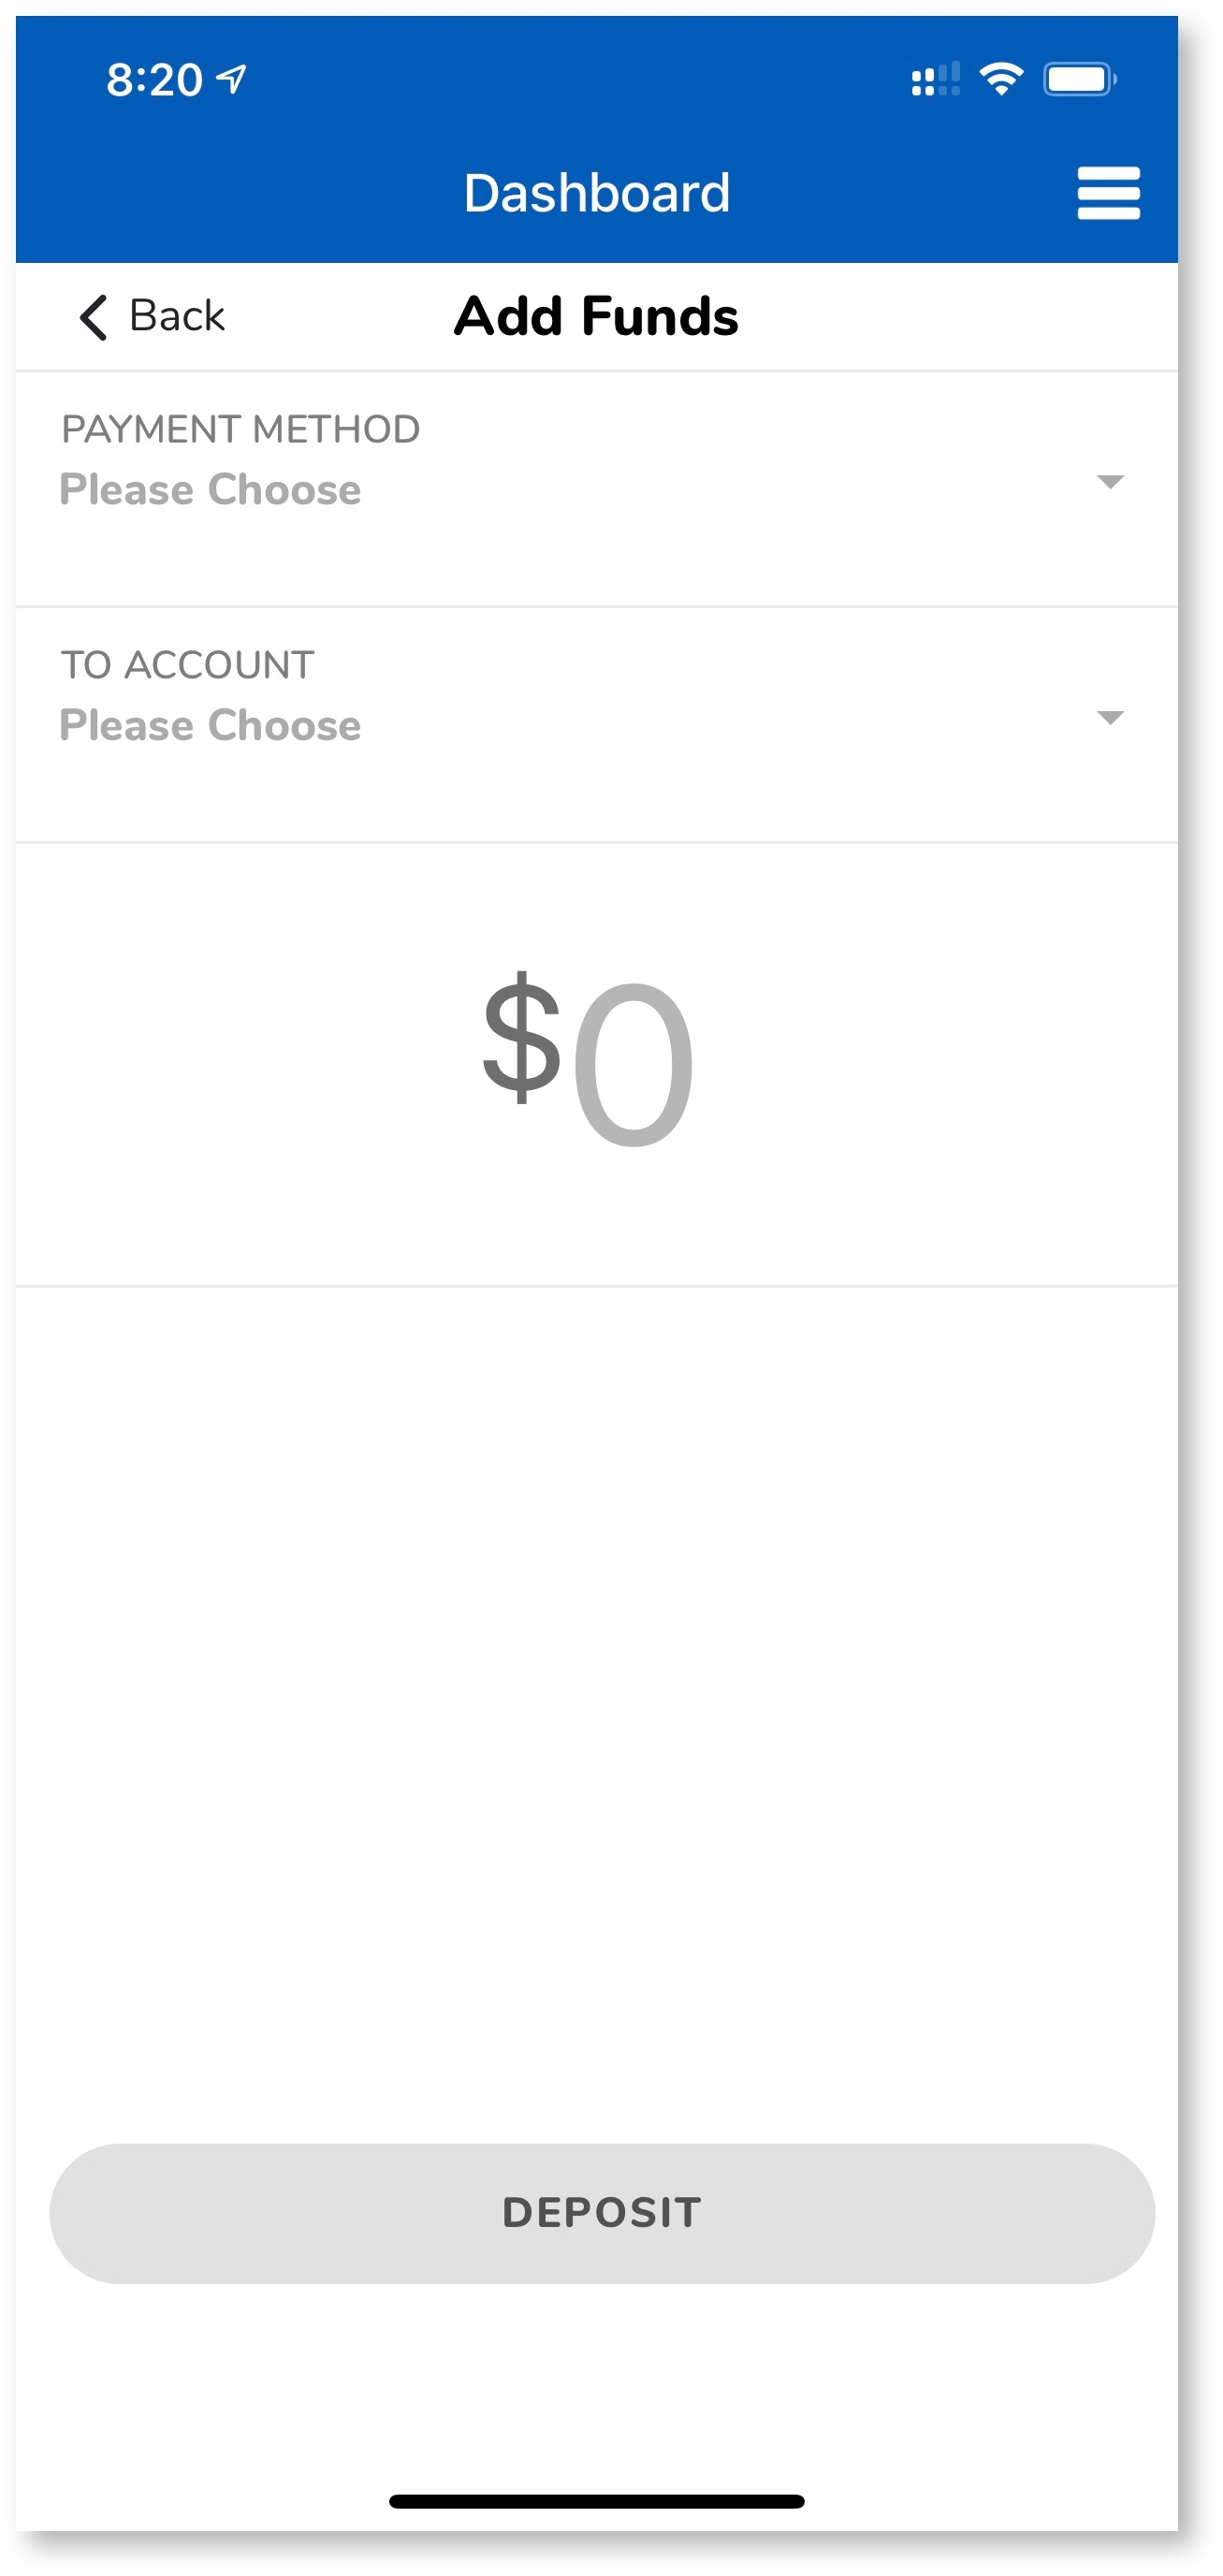 Mobile app funds screen